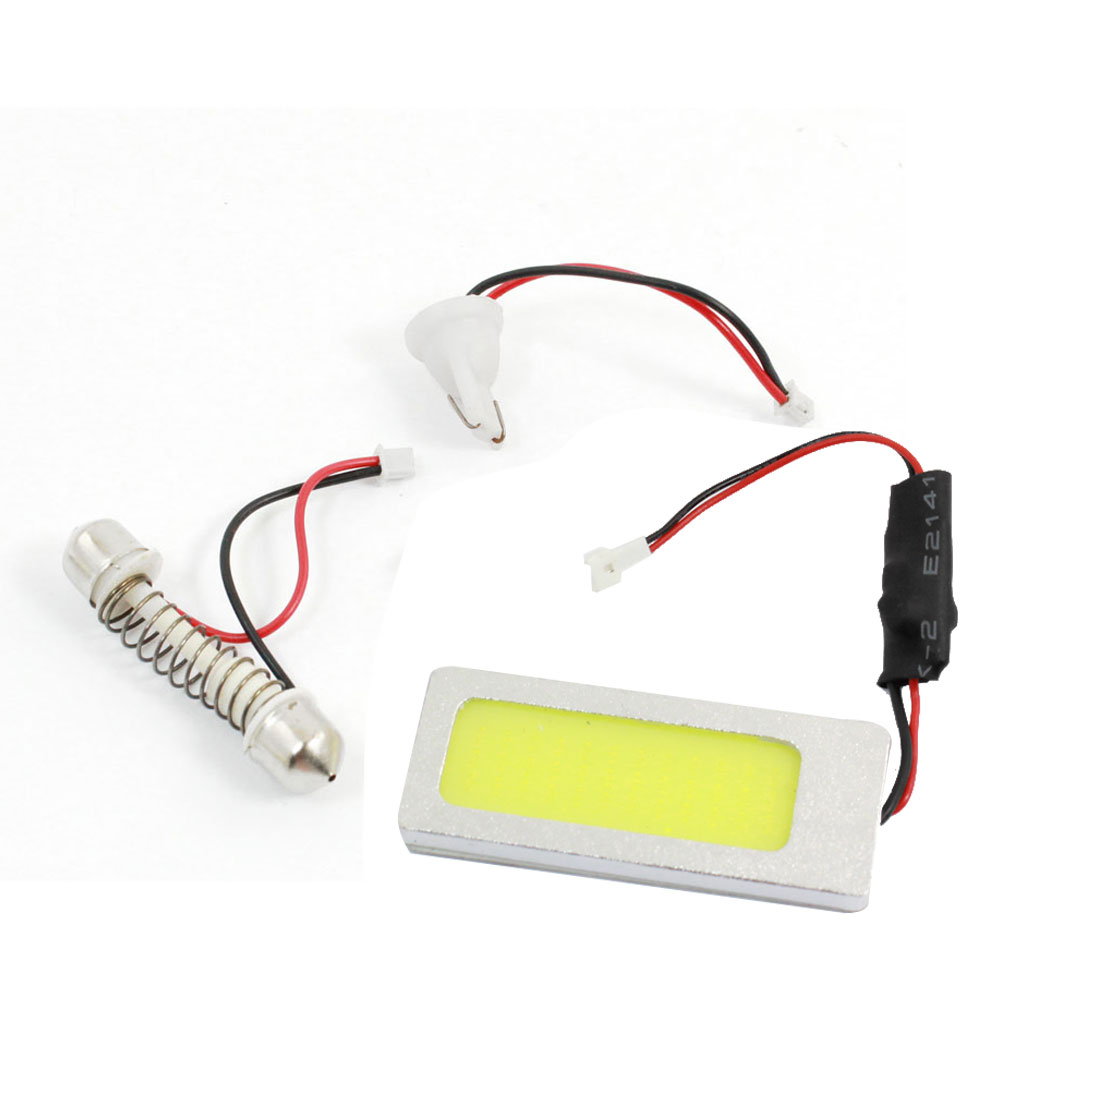 Auto White 36 COB Roof Dome Light Panel 12V w T10 Festoon Adapter internal